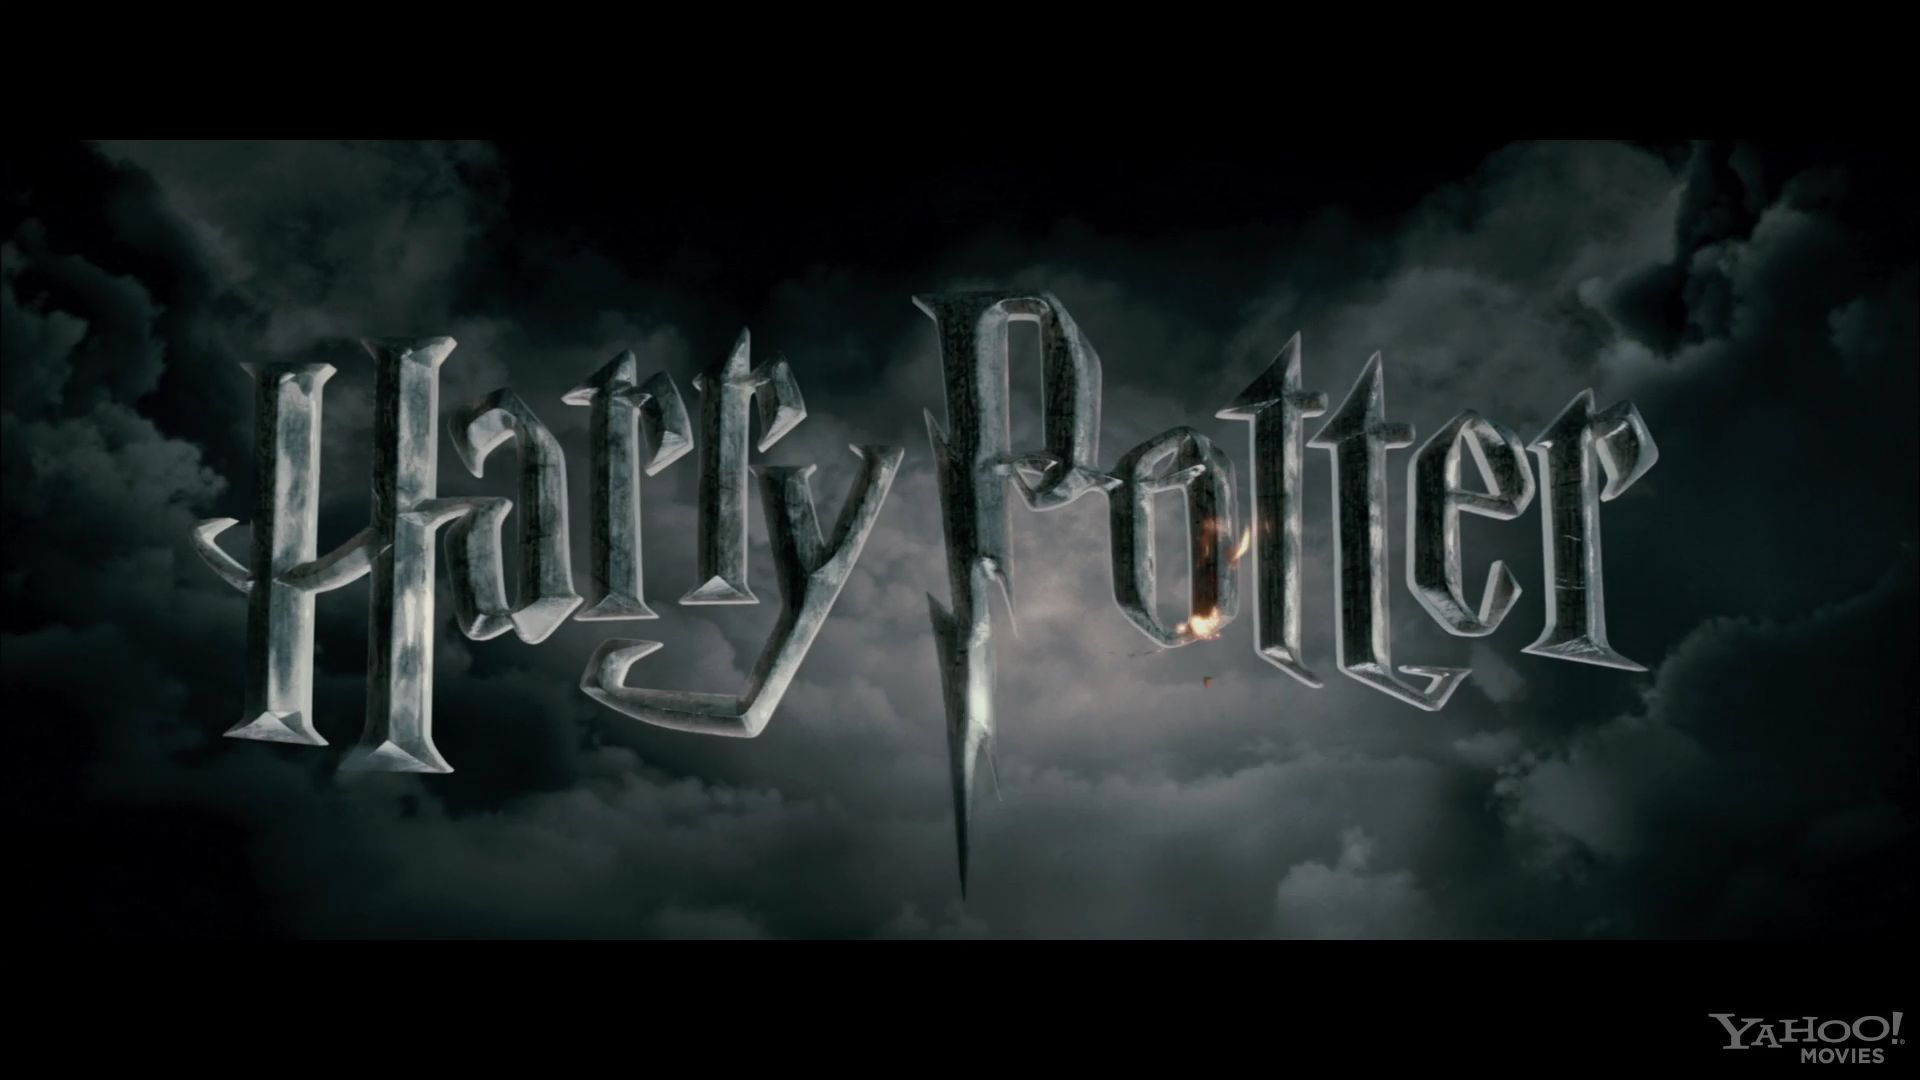 Harry Potter And The Deathly Hallows Featurette Epic